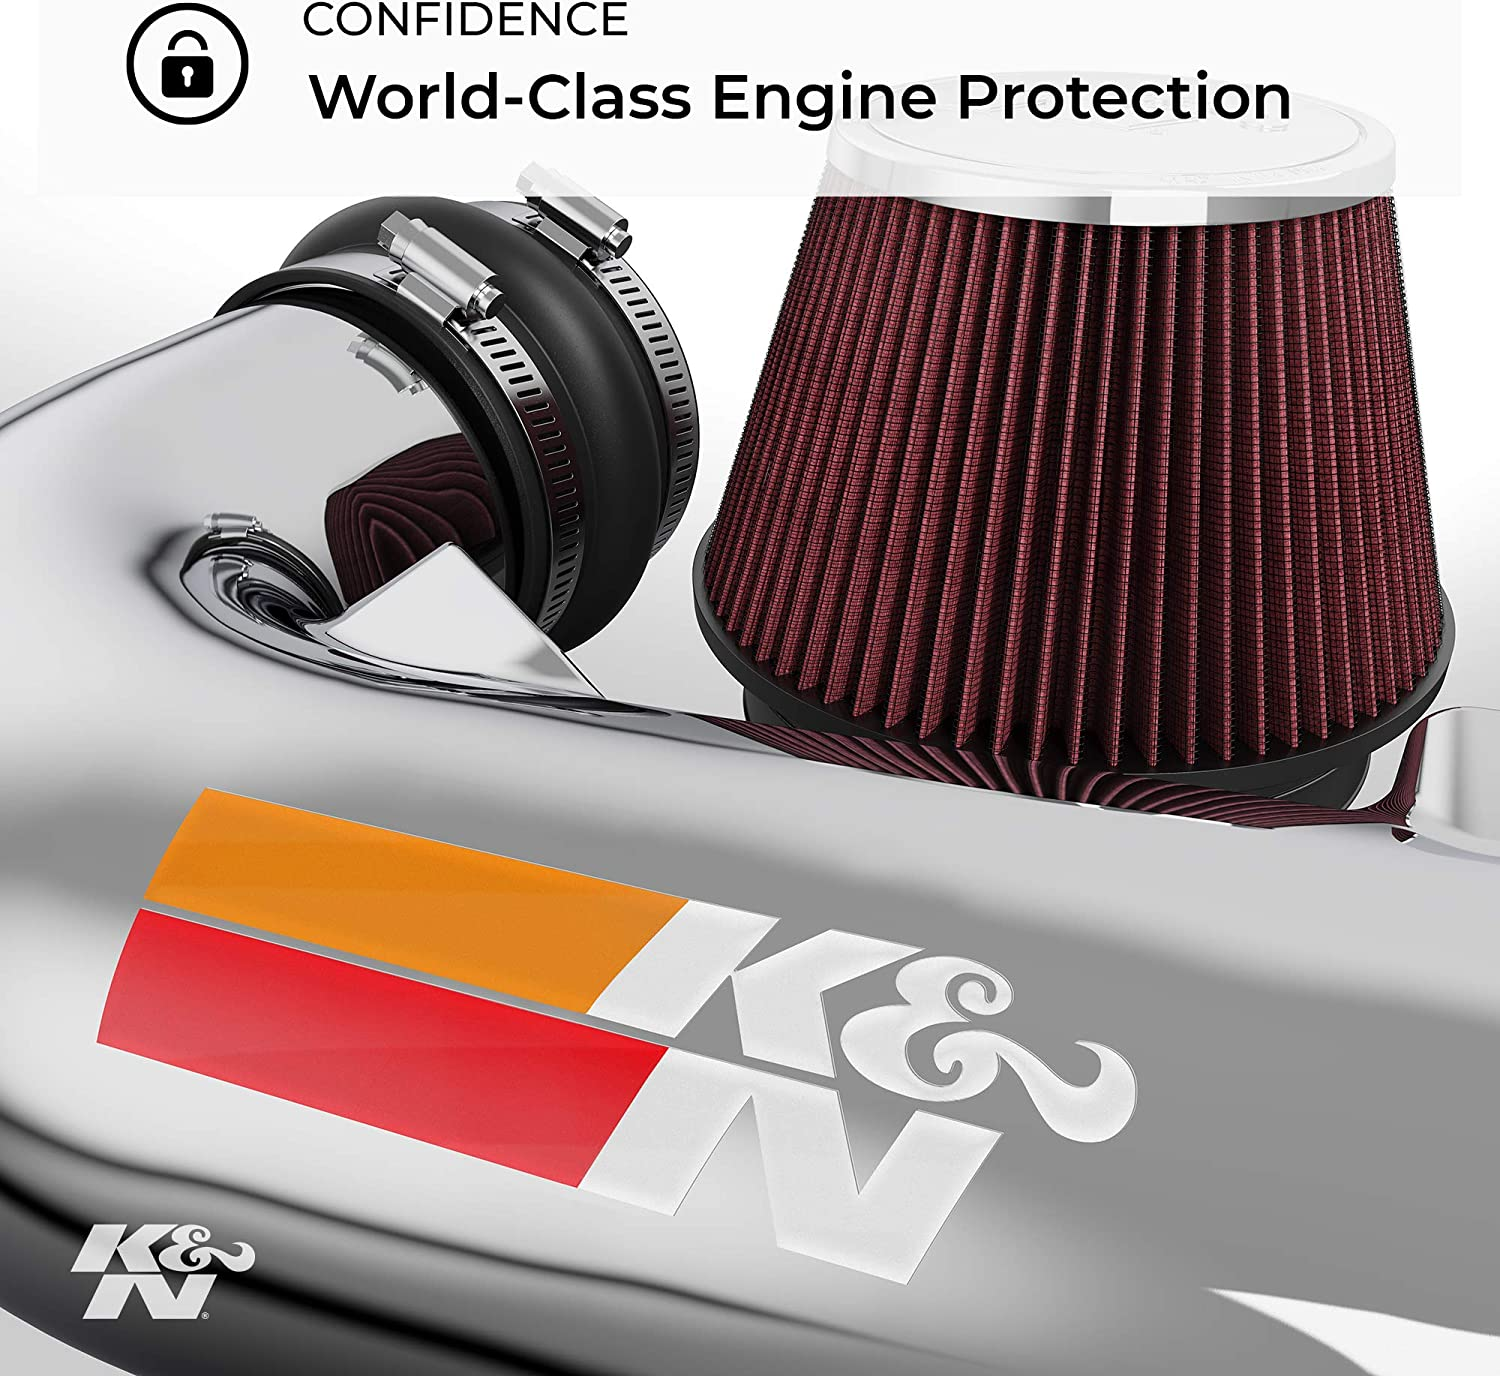 K/&N 69-3518TS Washable and Reusable Car Performance Intake Kit